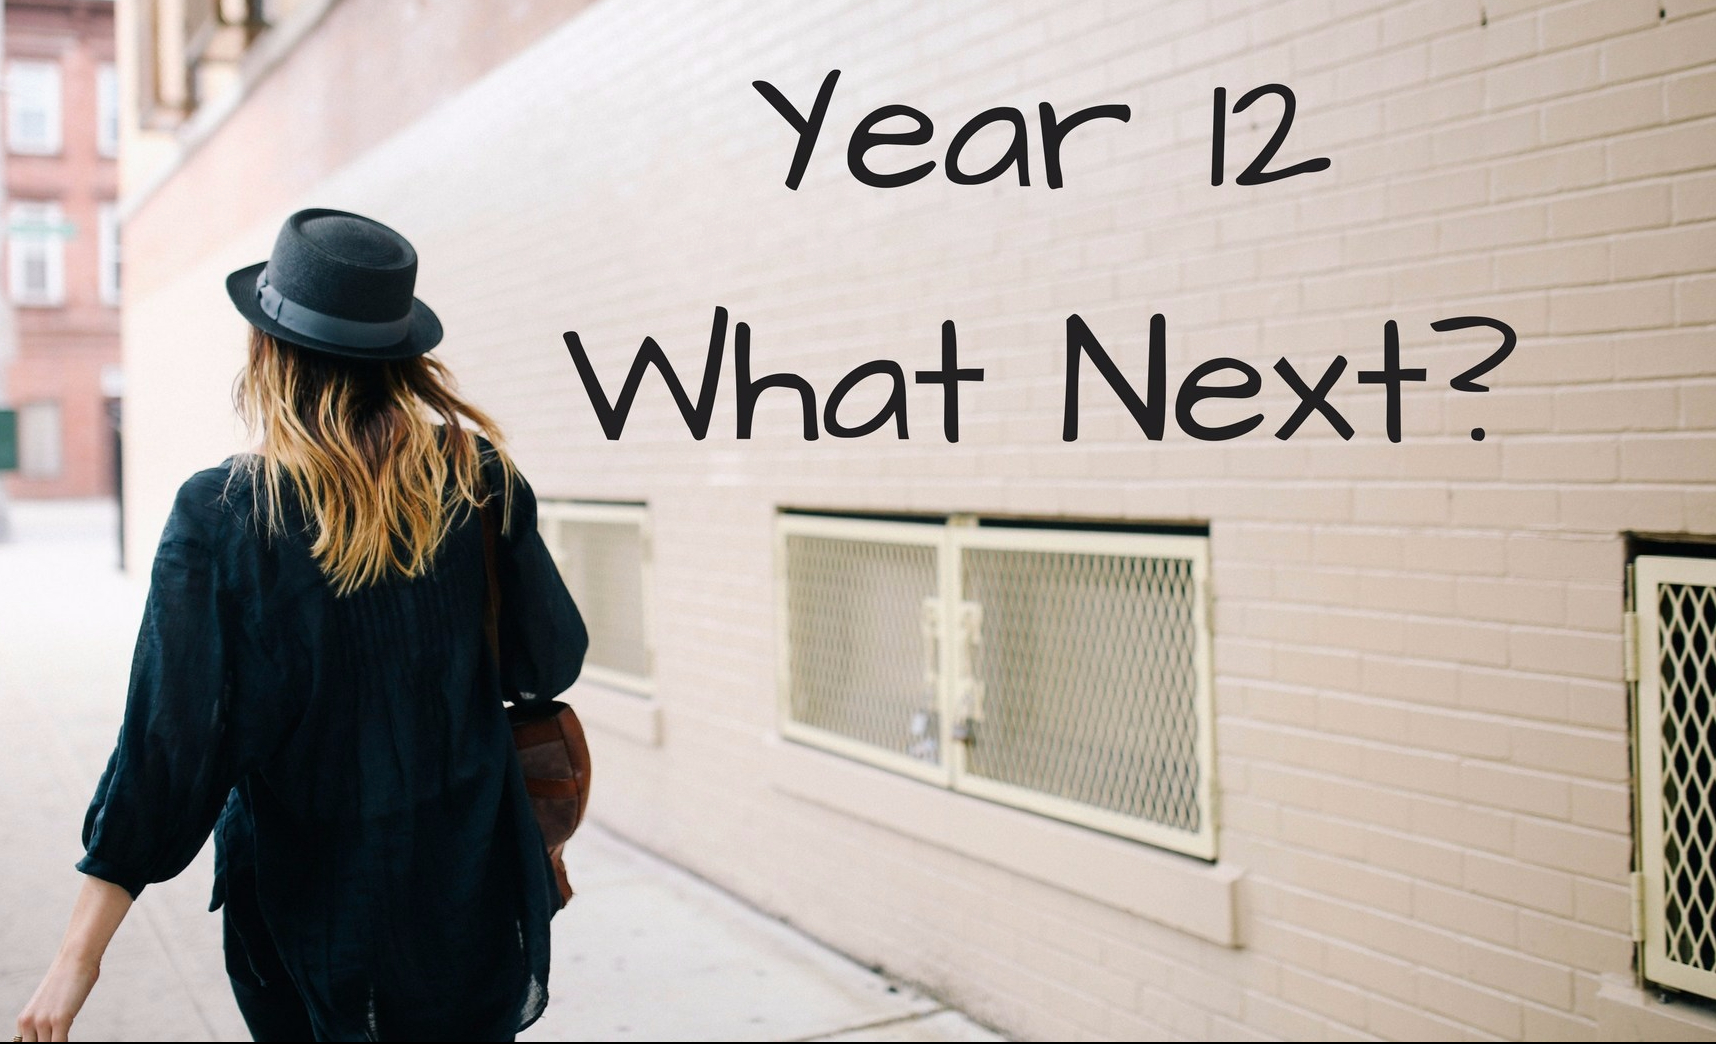 Year 12 What Next?